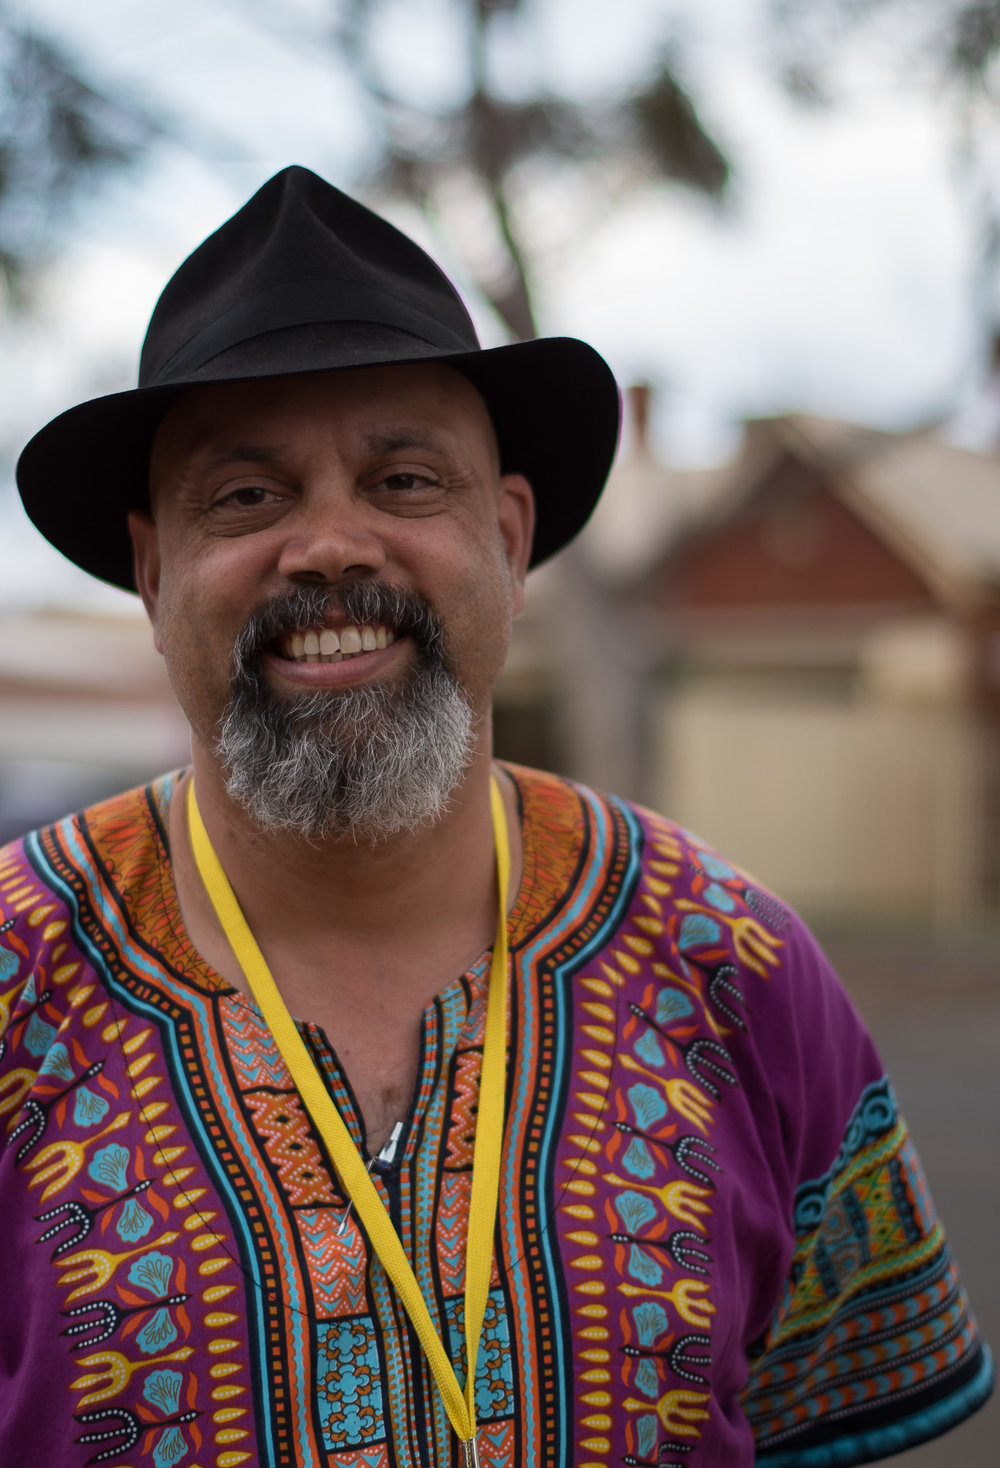 - Ron Bradfield Jnr is a saltwater fella from Bardi Country, north of Broome but grew up in Geraldton, WA. He now calls Whadjuk Boodjah, his home. Ron has been accused of many things, but he swears he's just a storyteller - who gets to hear a fair few too!